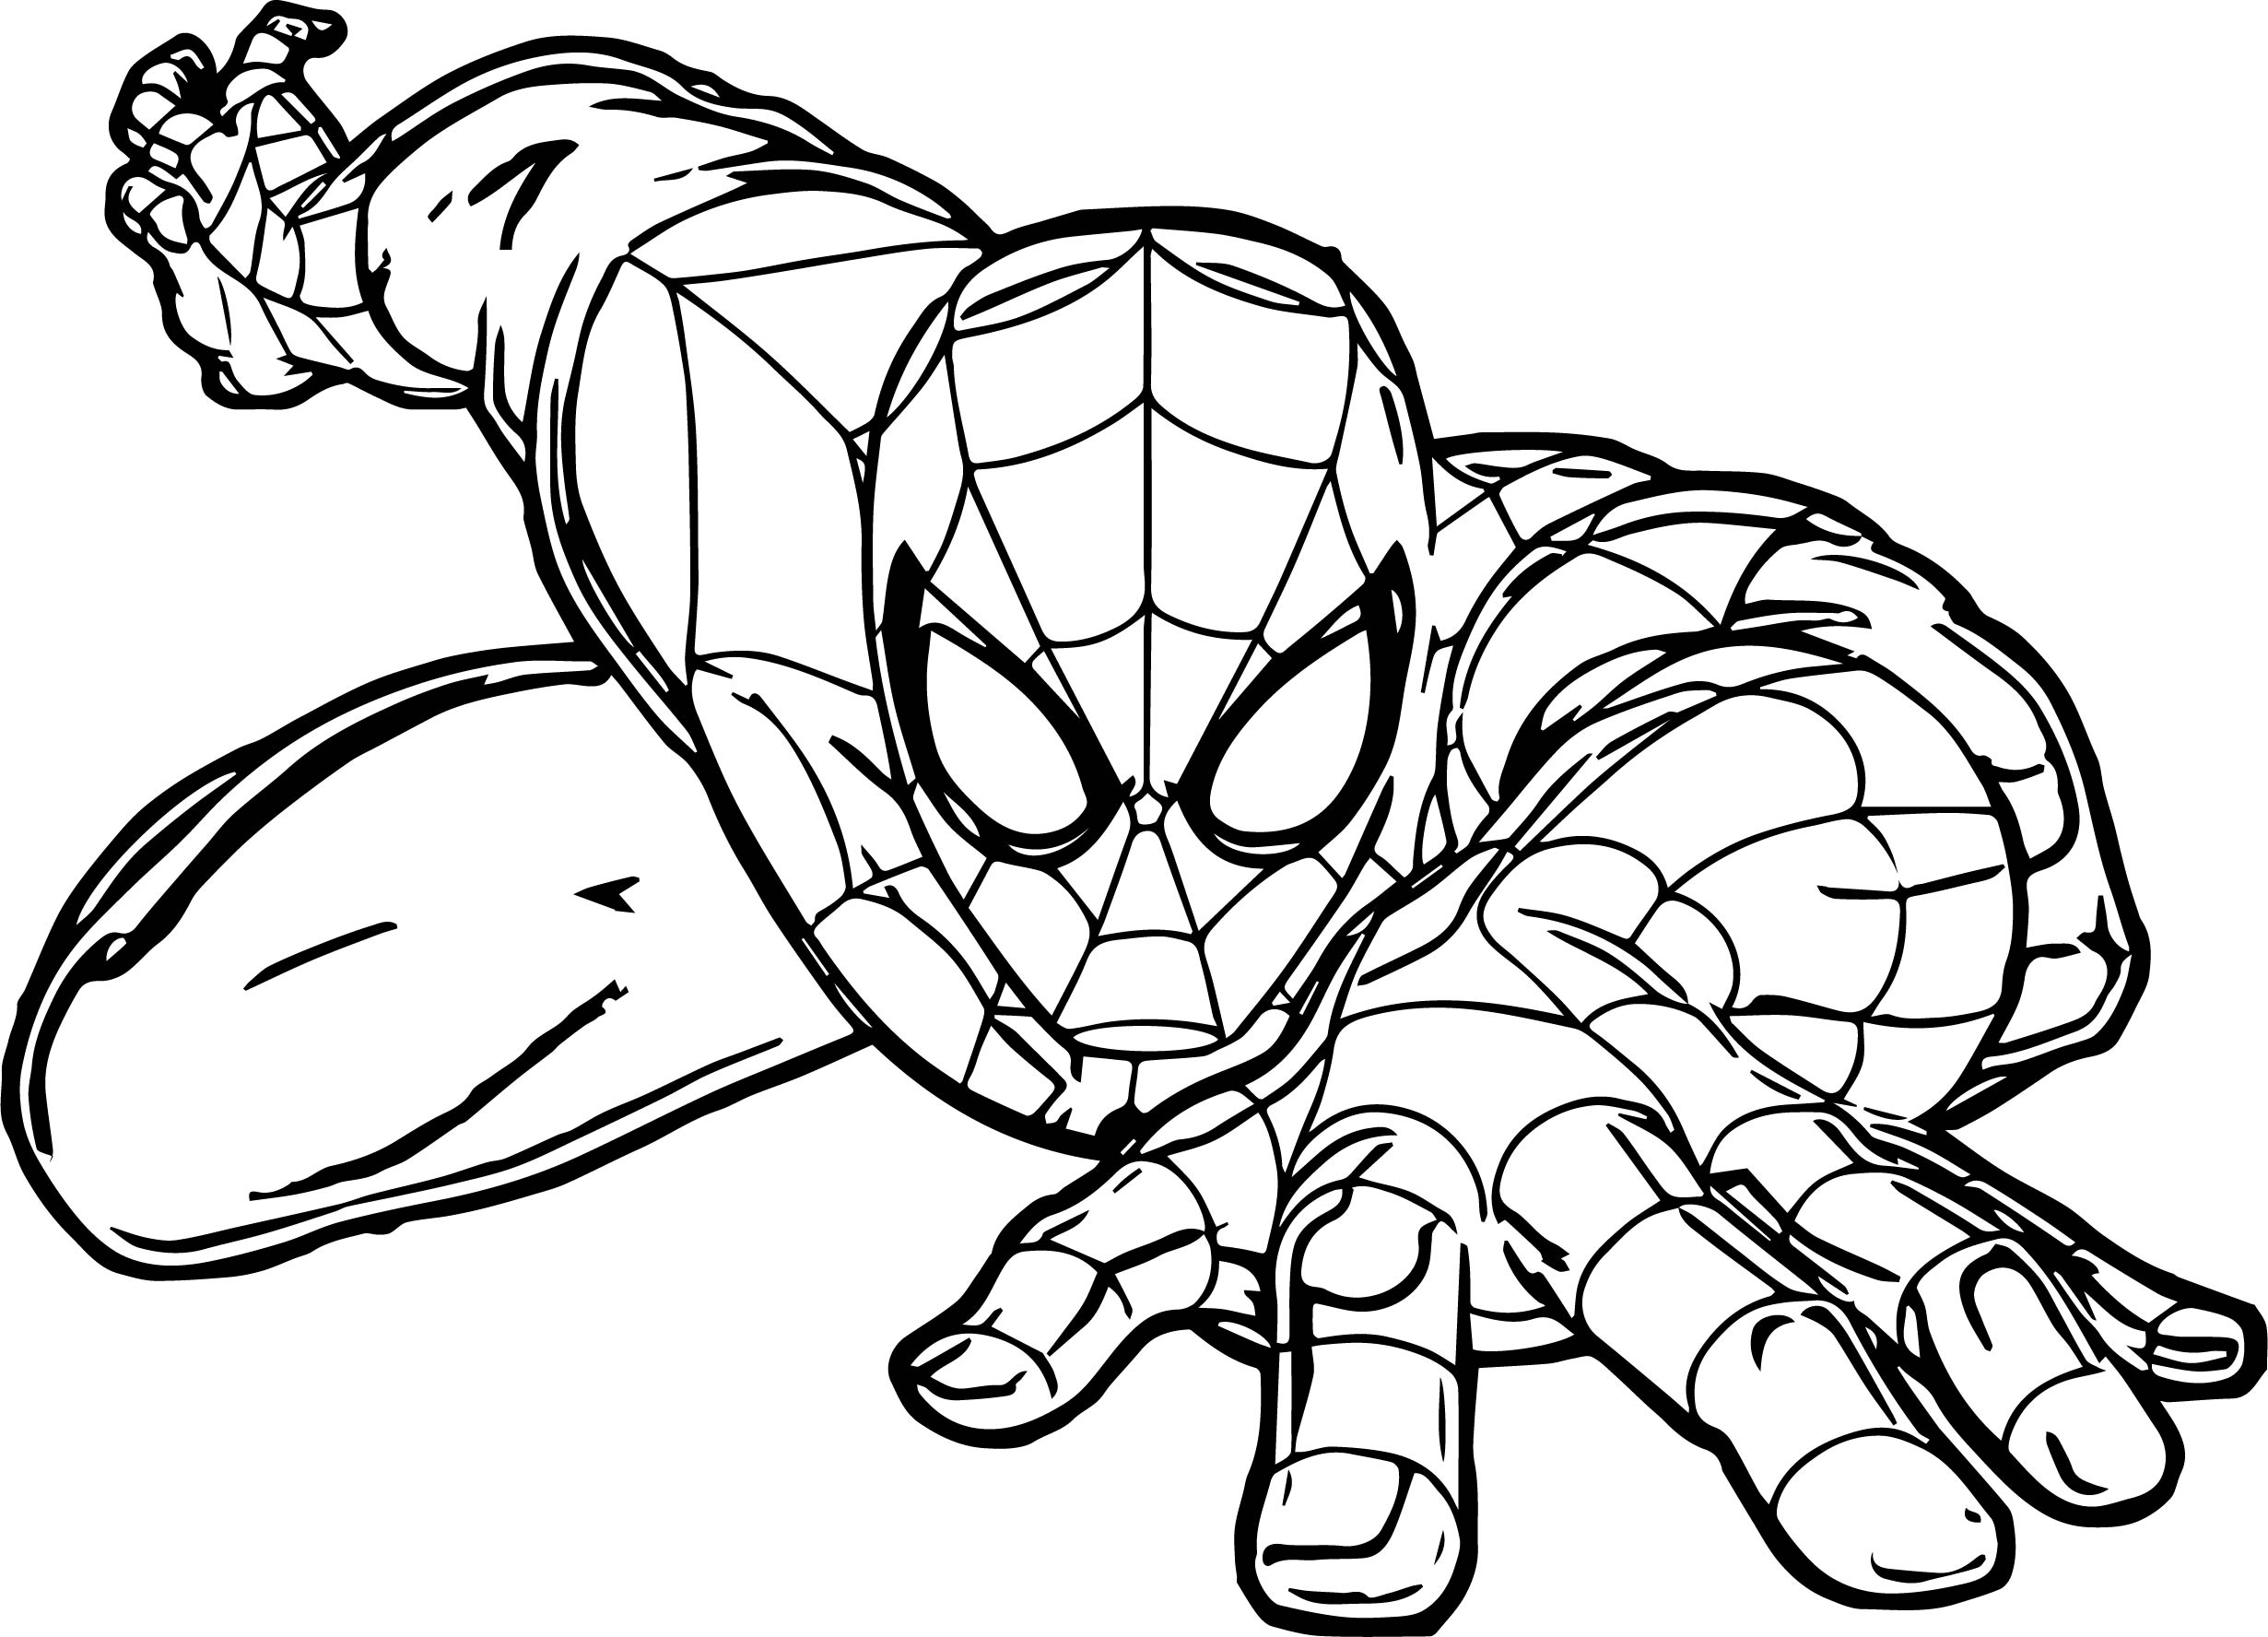 Spiderman Crawl Spider Man Coloring Page | Wecoloringpage.com